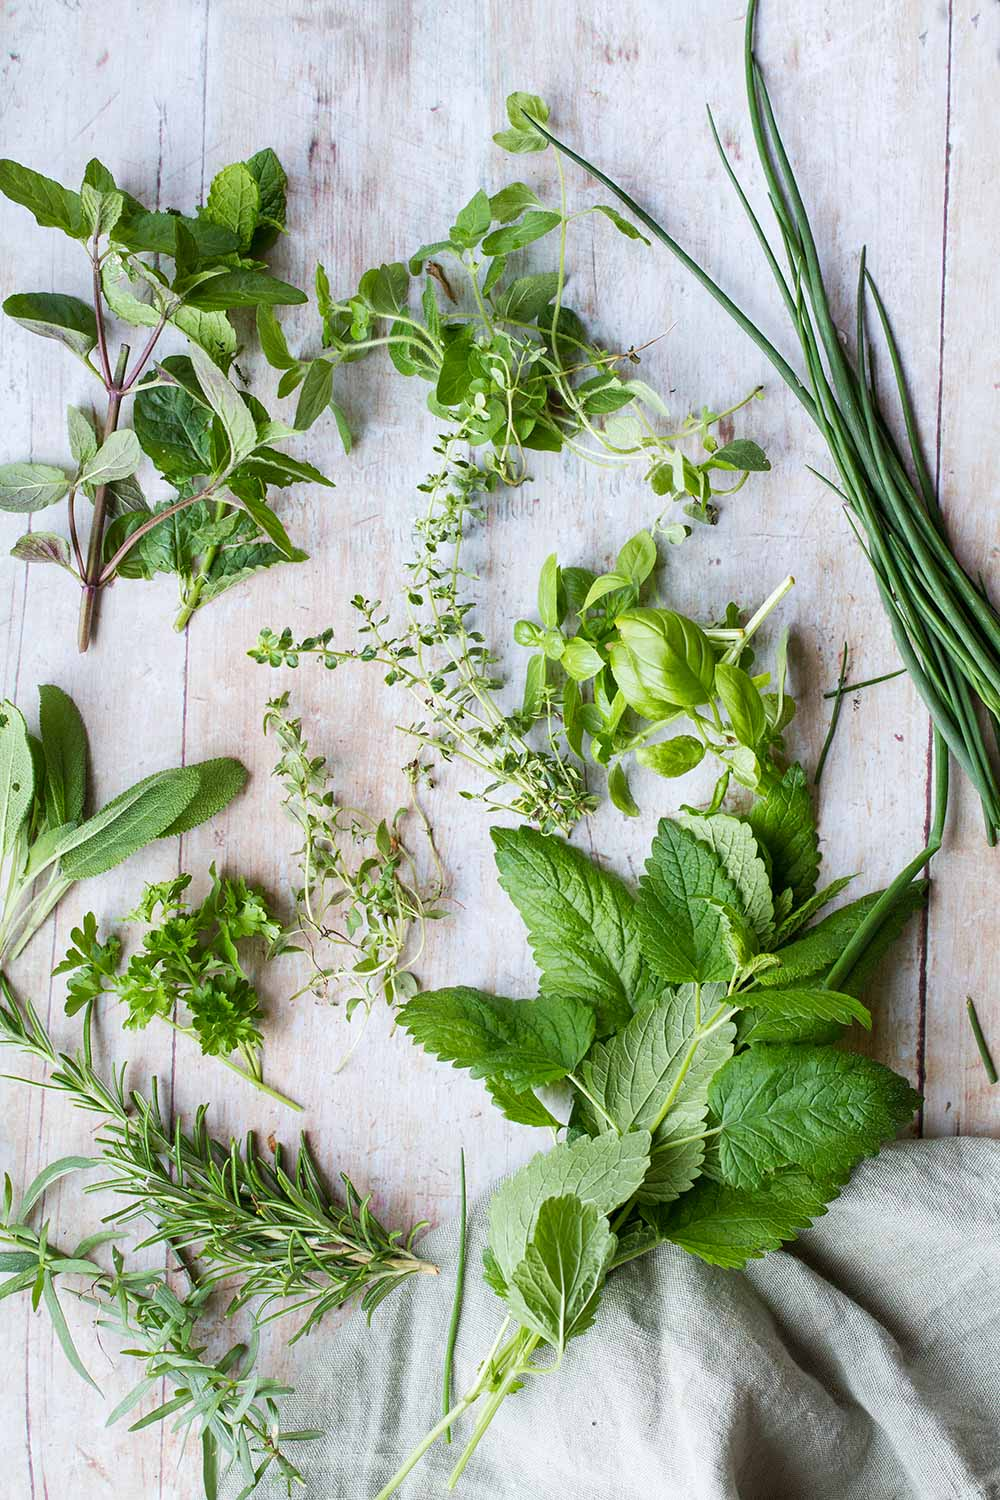 11 different herbs on a wooden table.